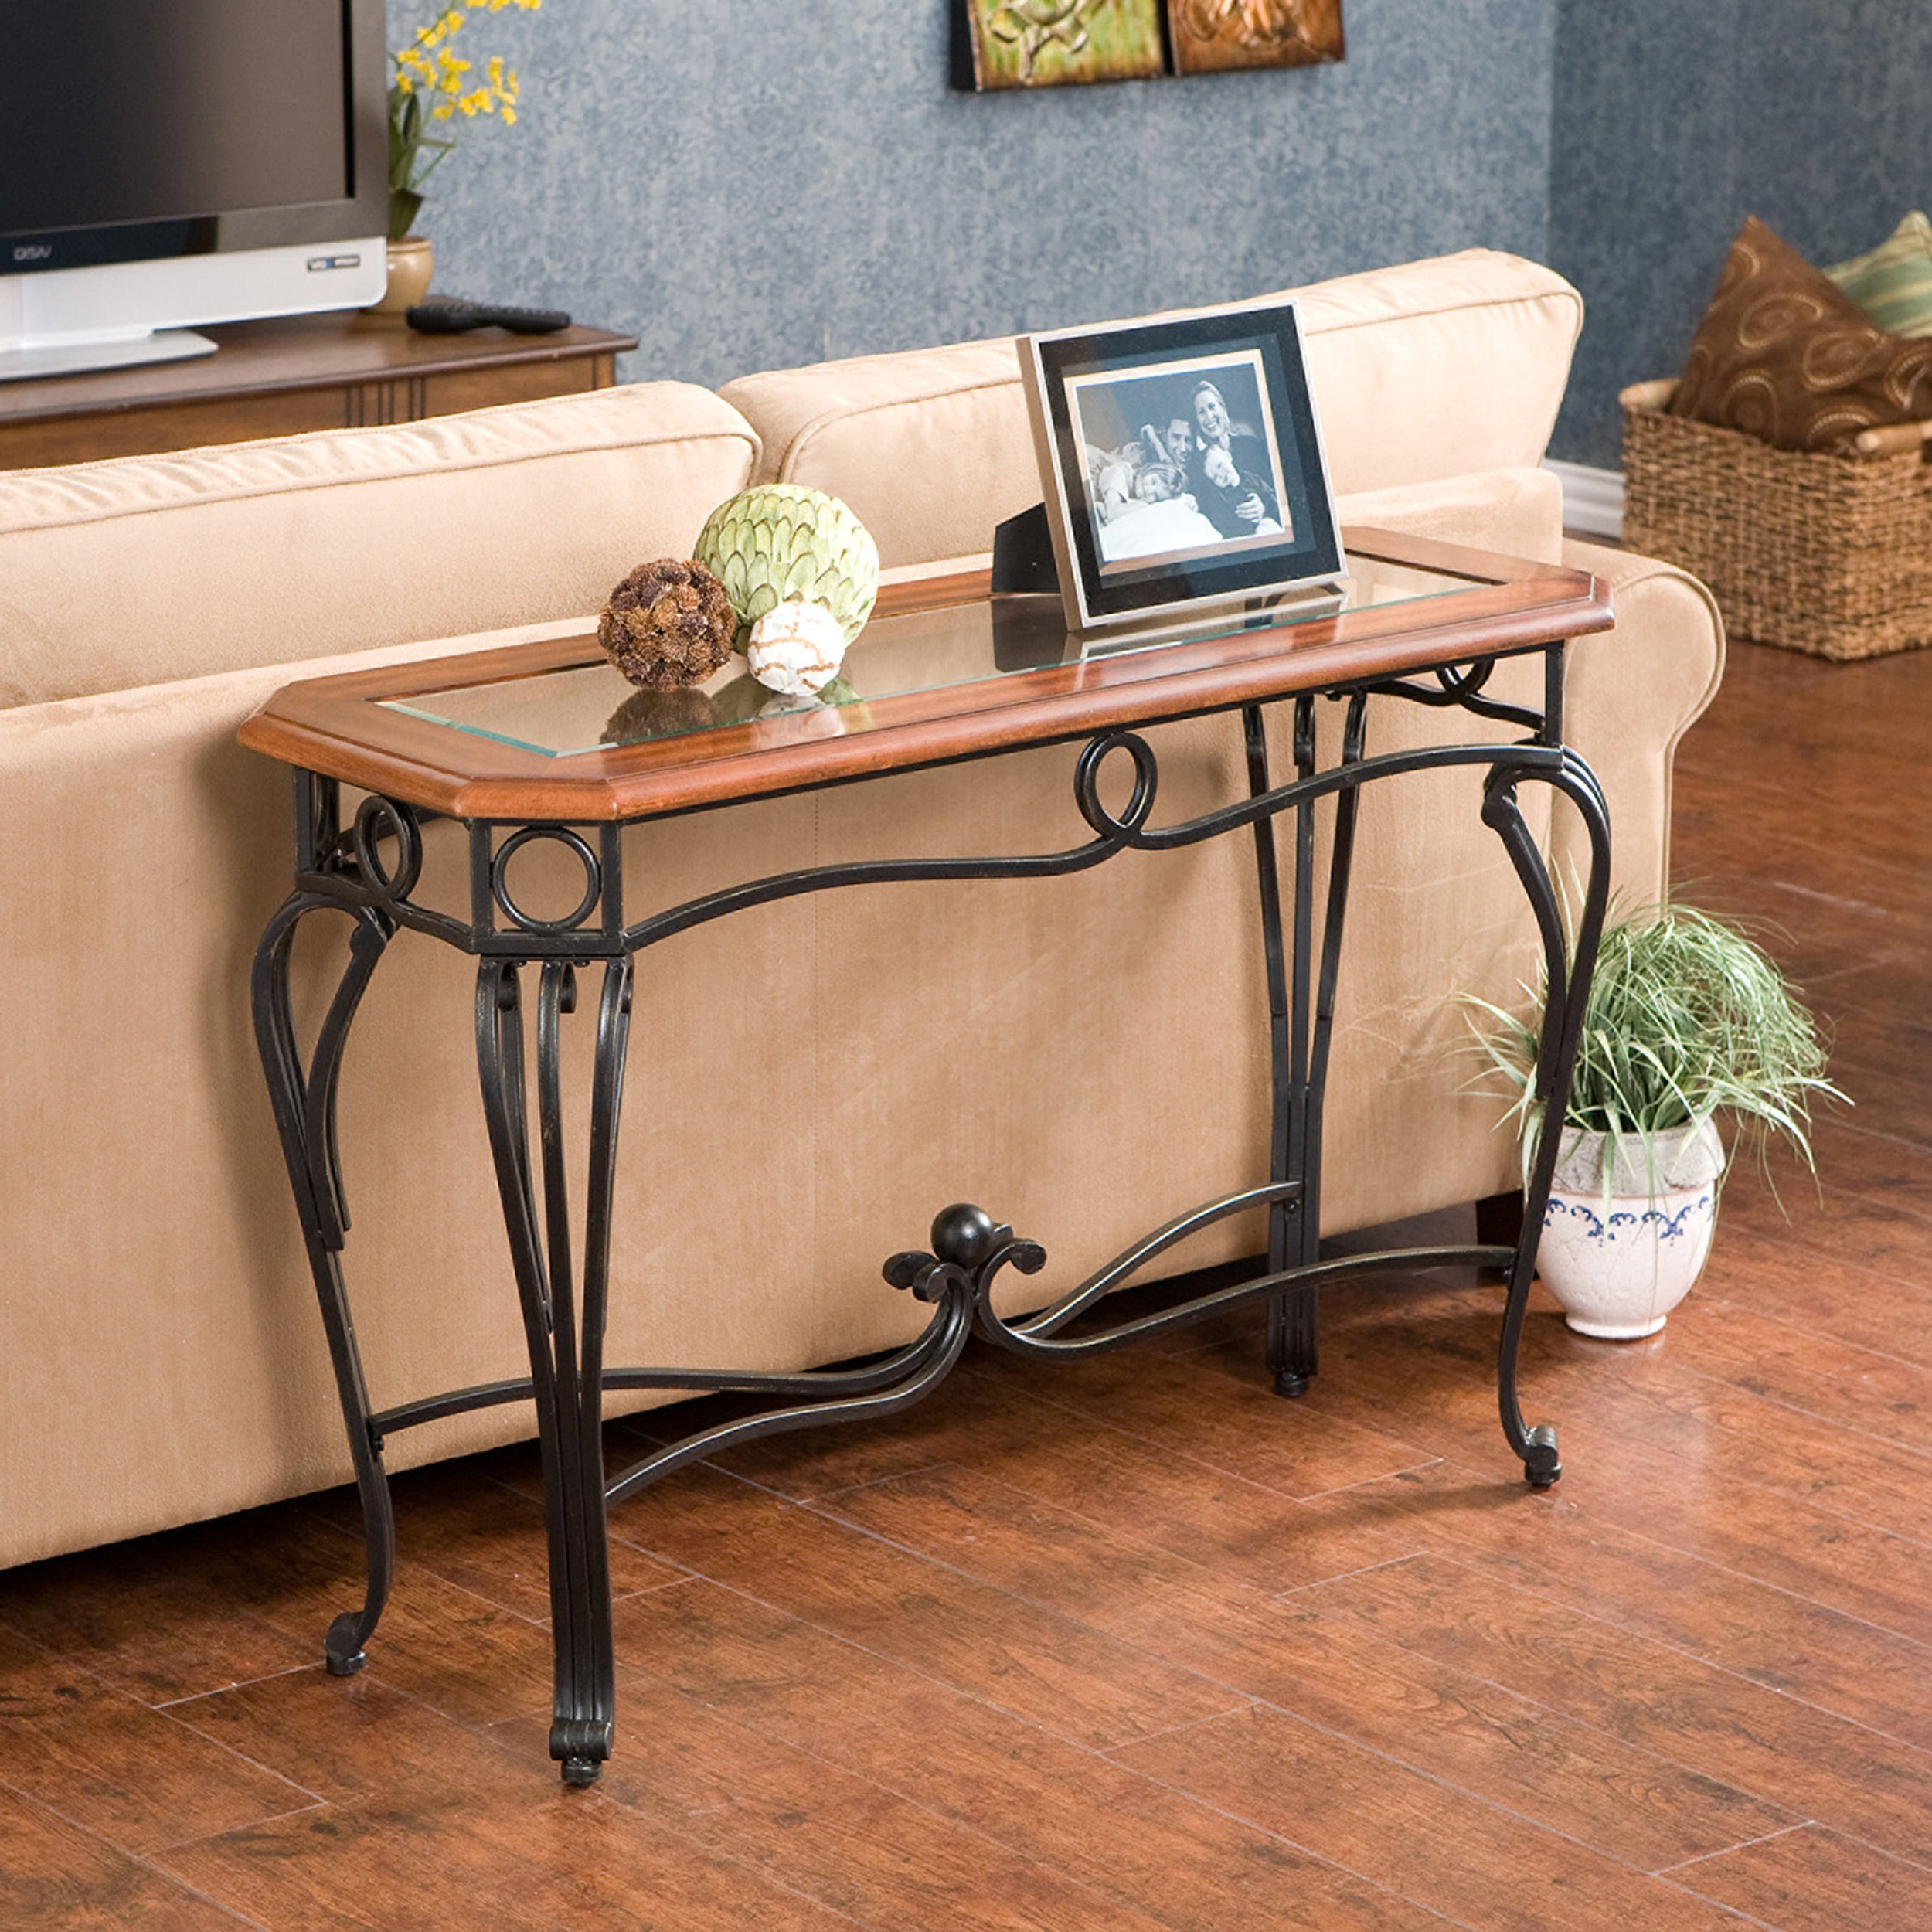 Gracewood Hollow Salinger Sofa Table With Regard To Most Recent Gracewood Hollow Salinger Prentice Cocktail Tables (View 2 of 20)